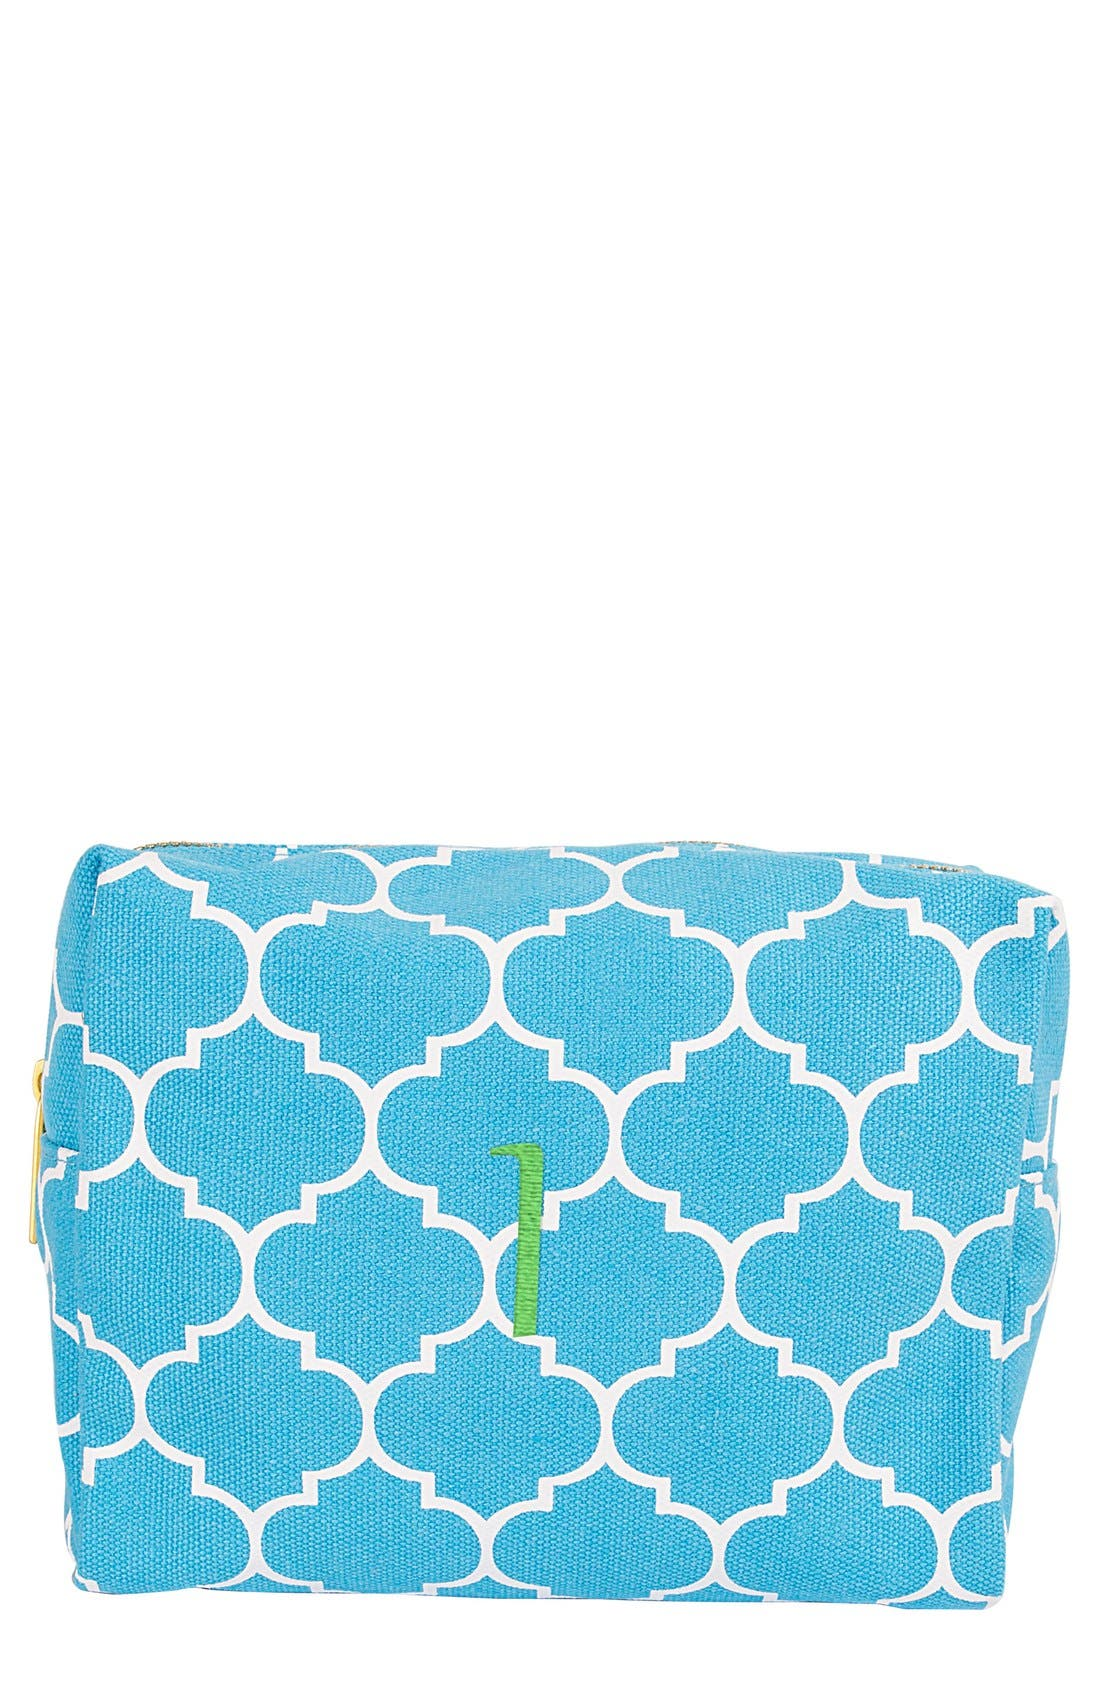 Alternate Image 1 Selected - Cathy's Concepts Monogram Cosmetics Bag